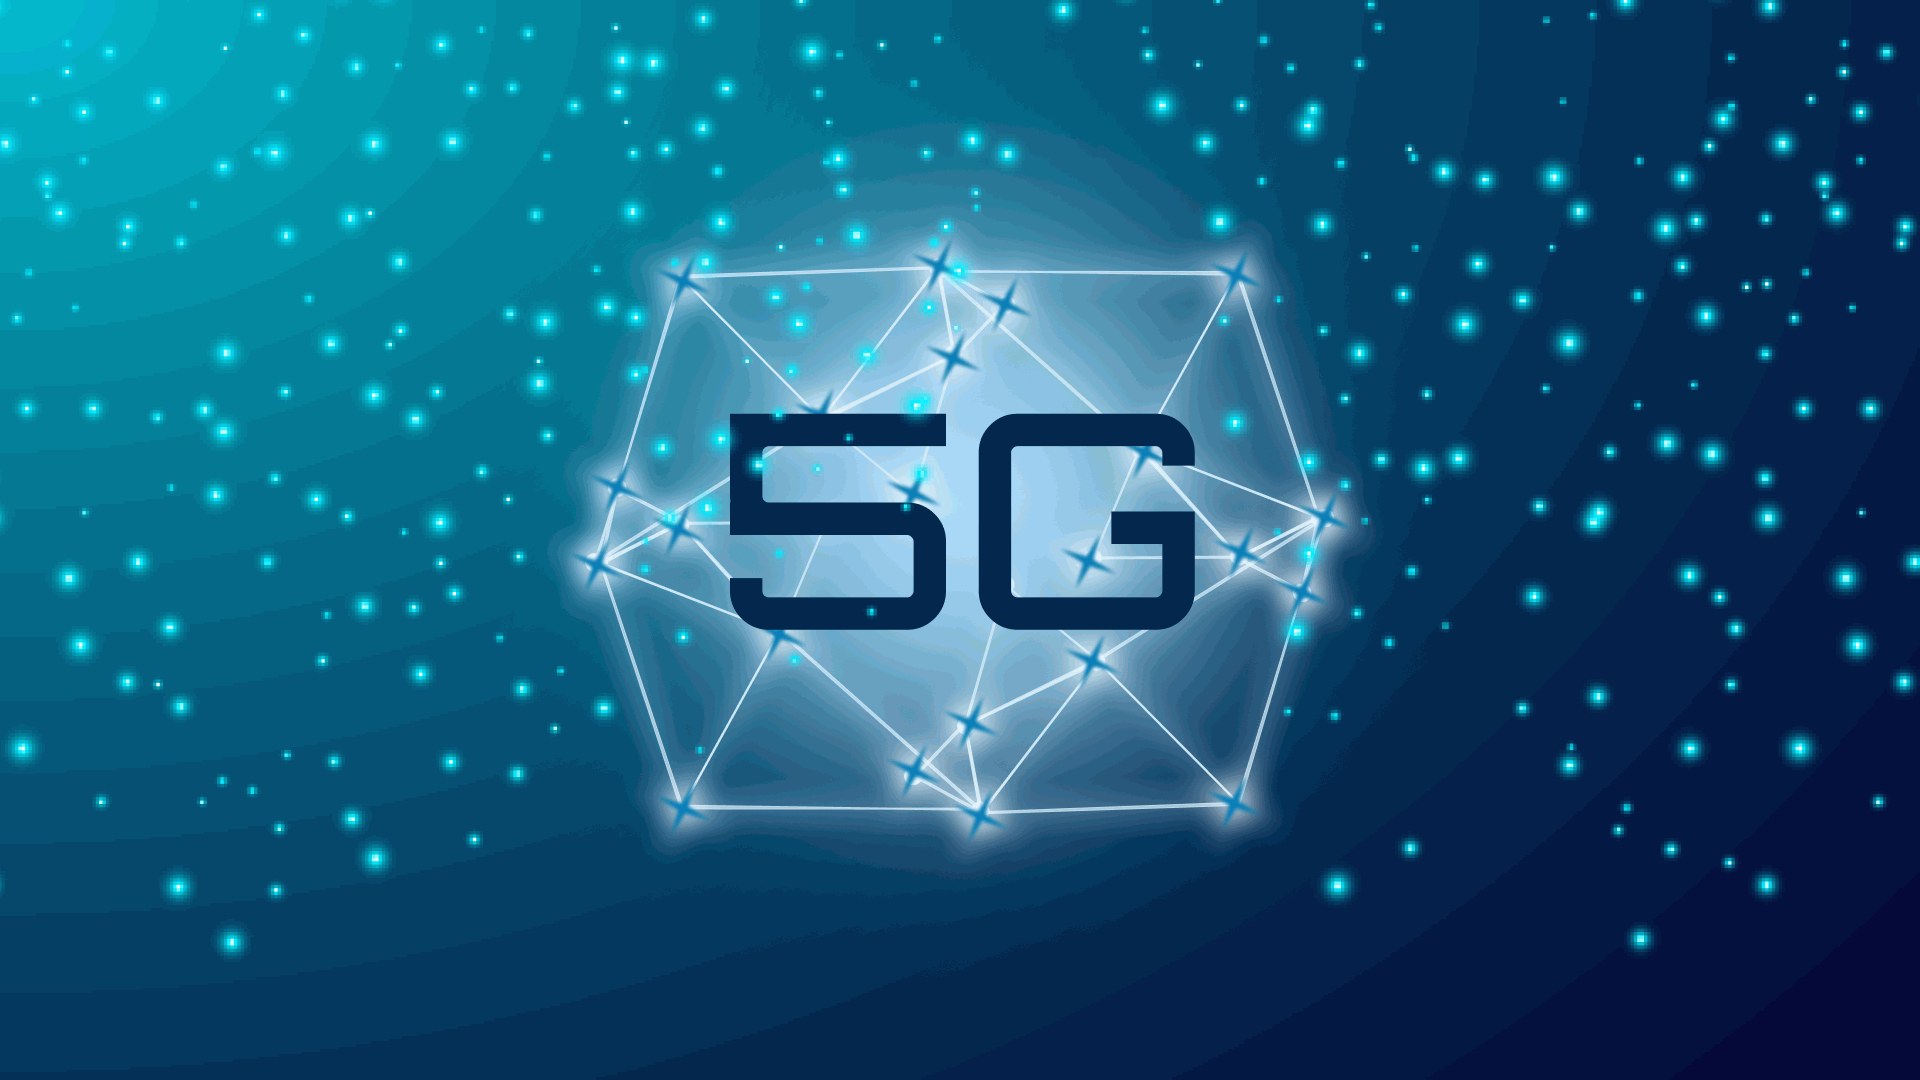 Does-5G-already-exist?